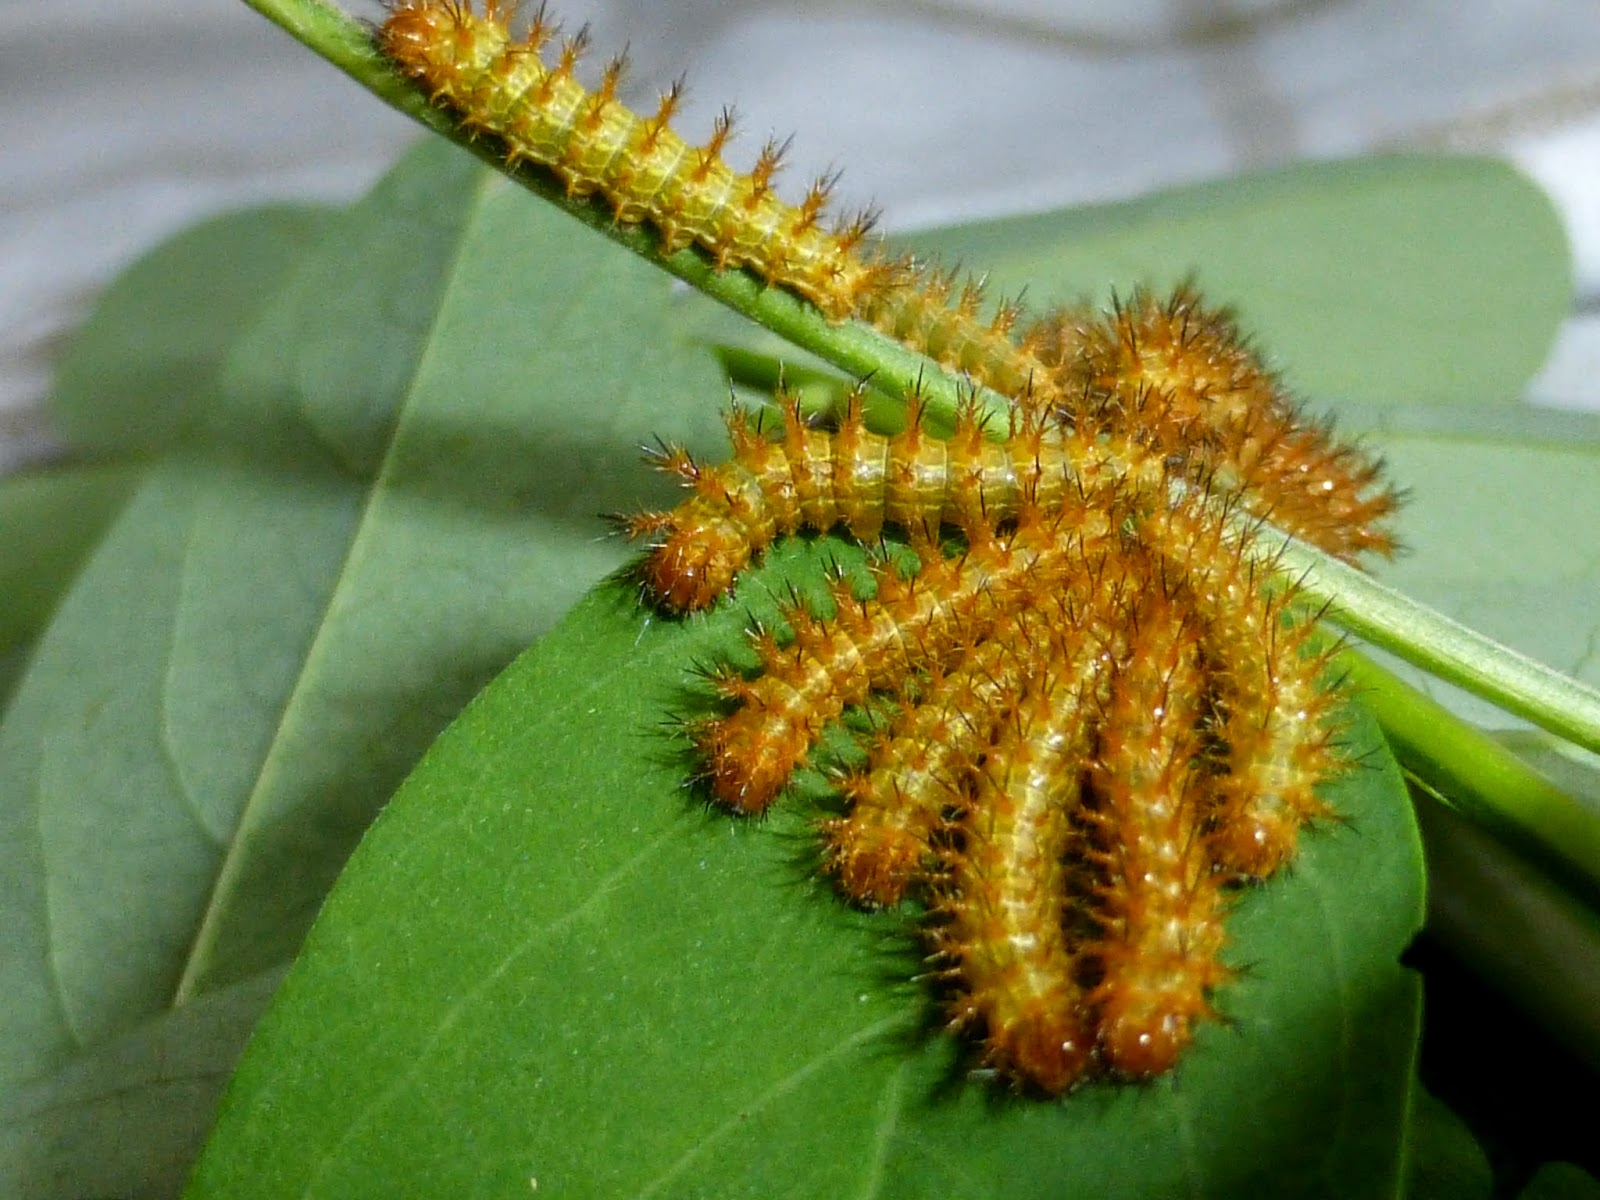 Automeris iris caterpillar